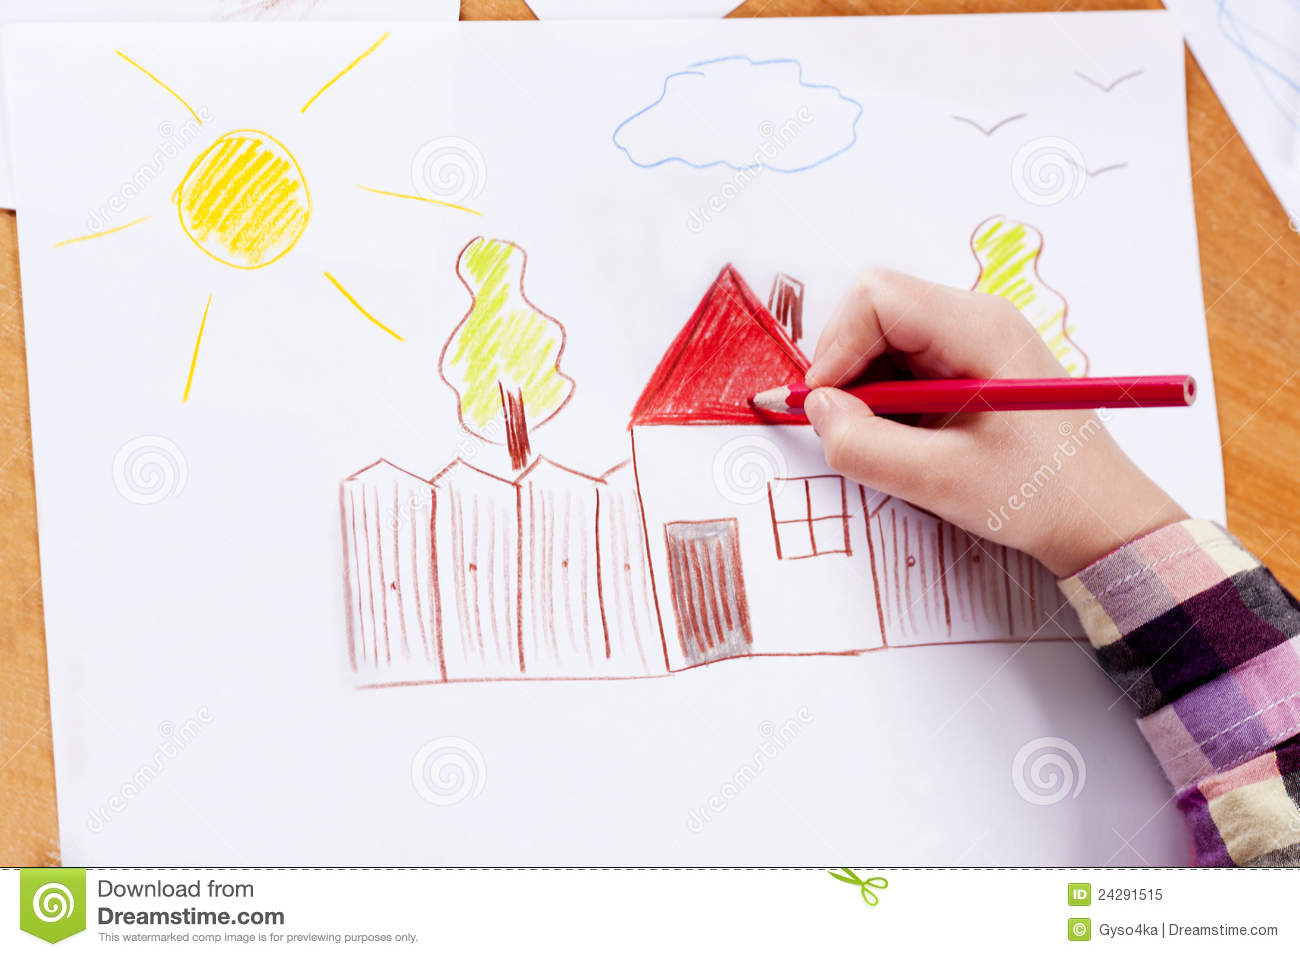 Royalty Free Stock Photo Child S Hand Drawing Image24291515 on 2d house drawing